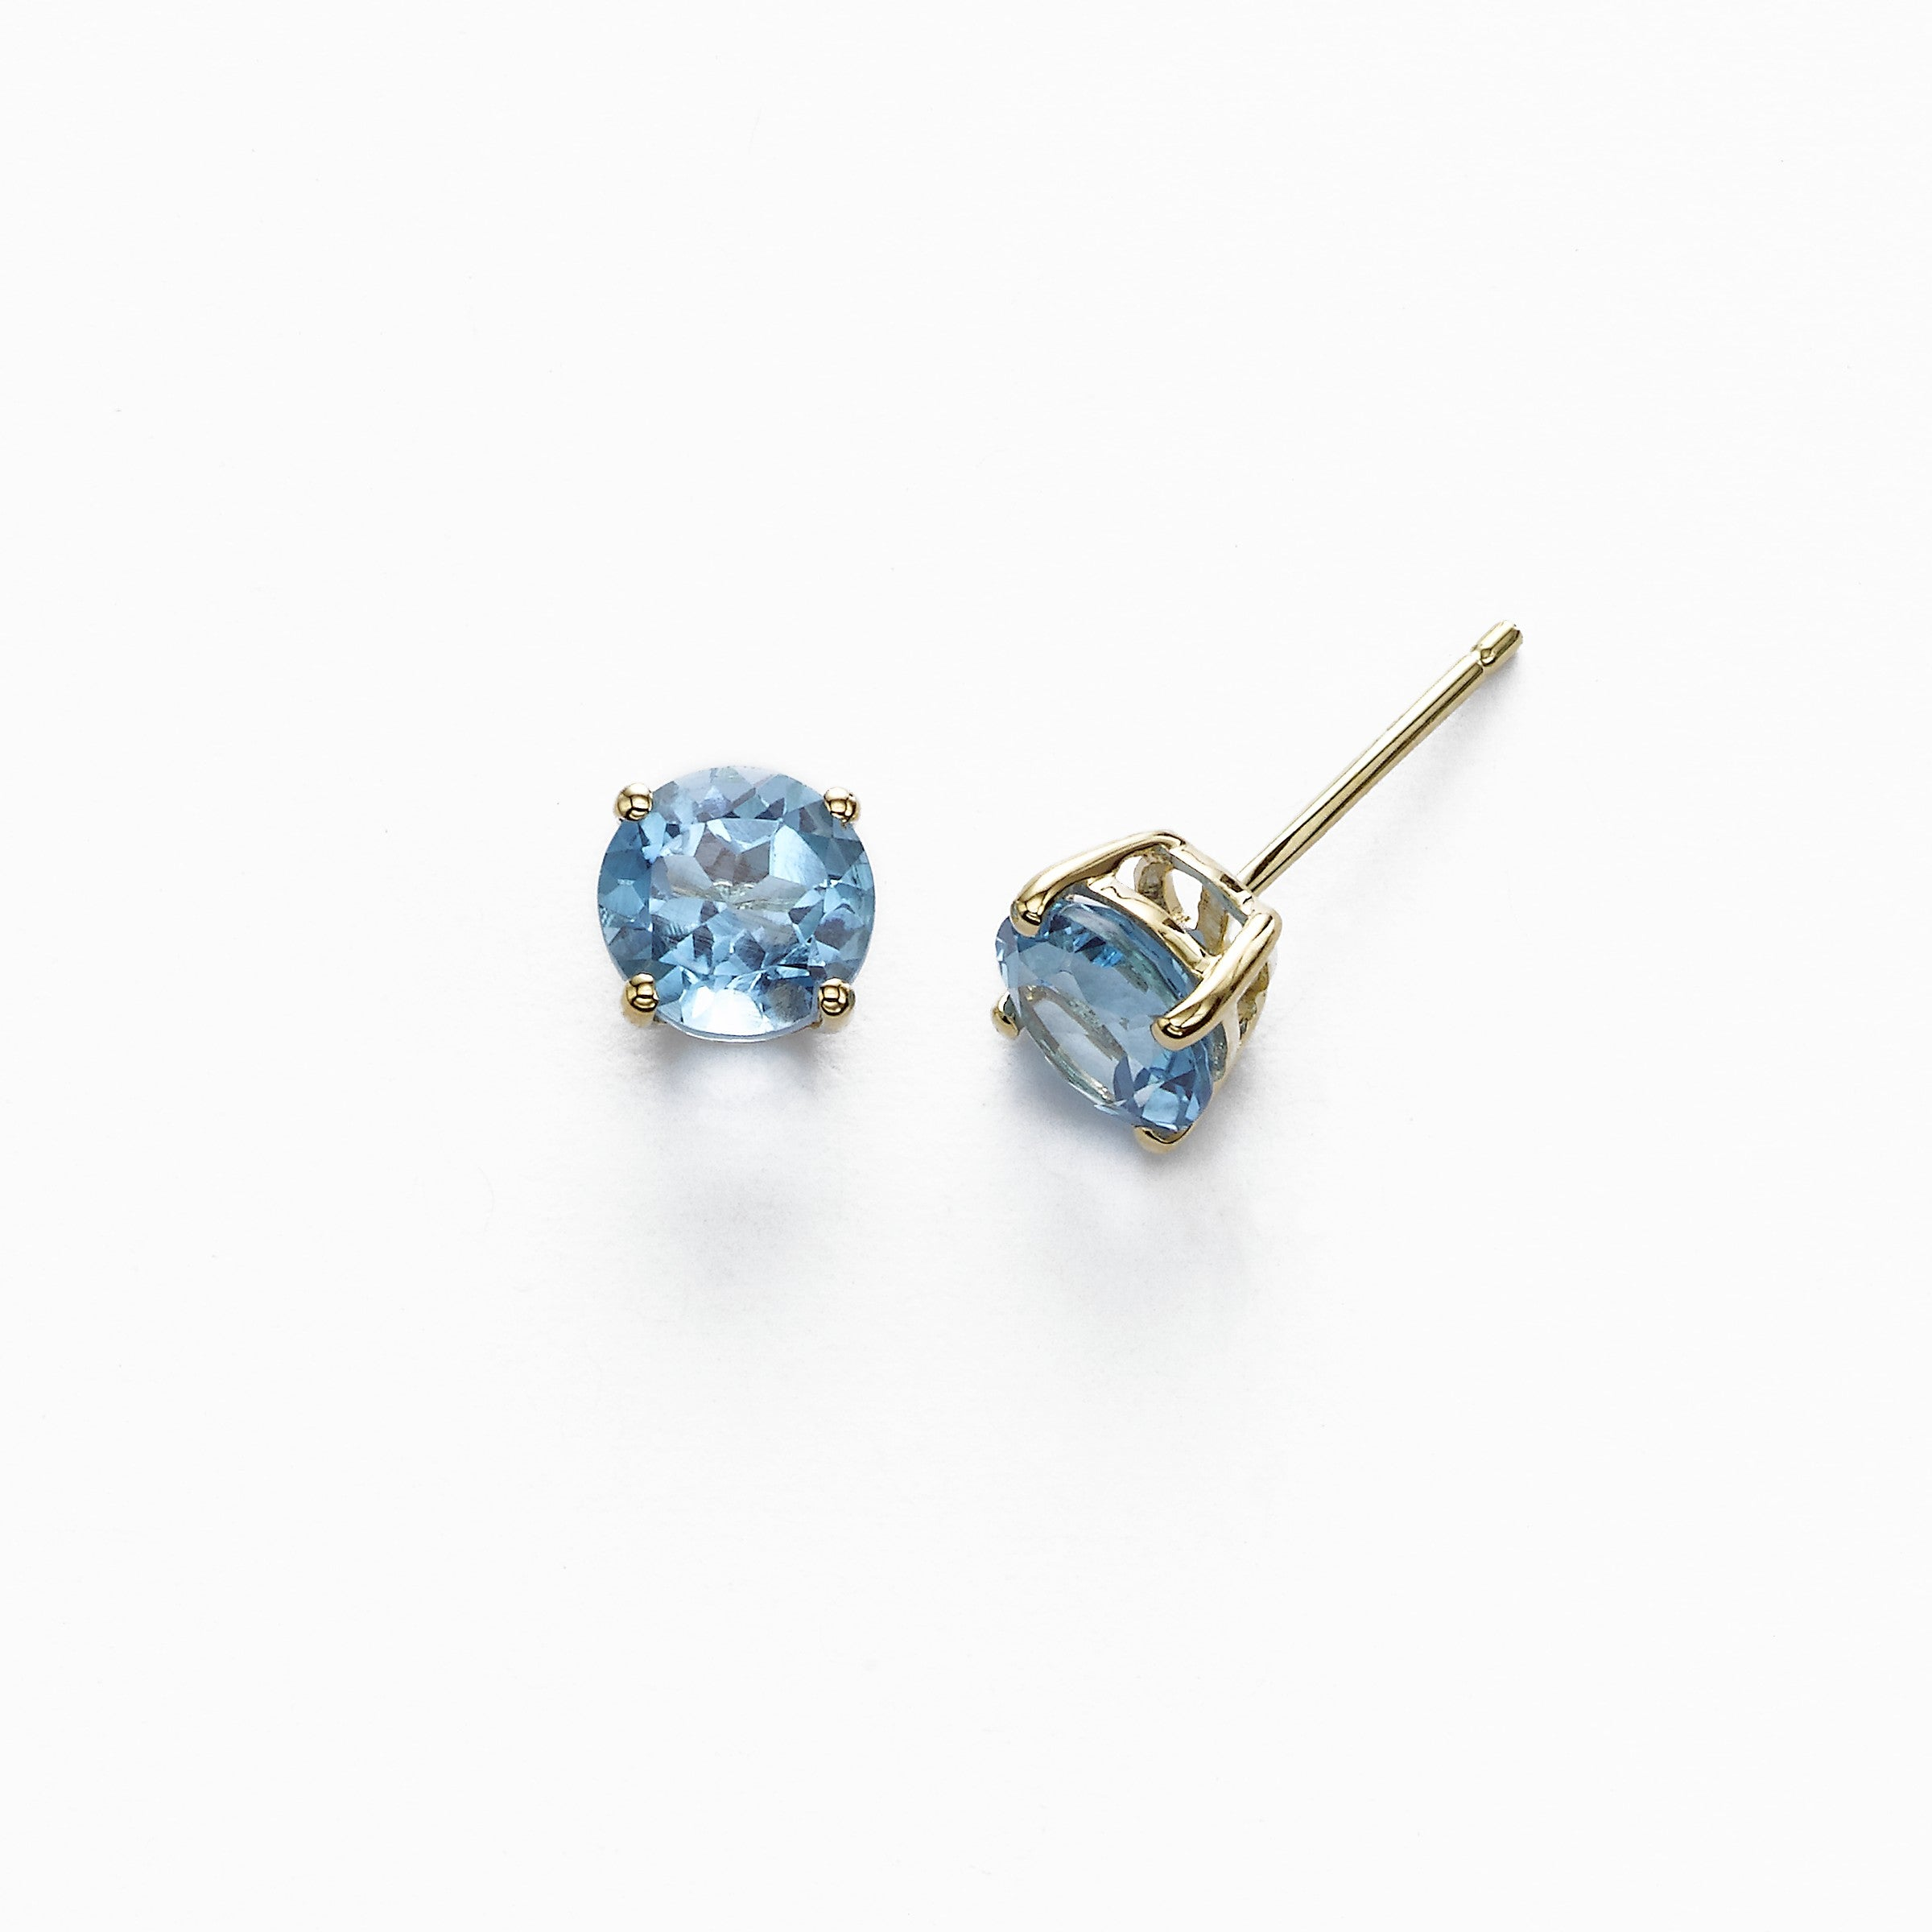 Round Blue Topaz Stud Earrings, 6 MM, 14K Yellow Gold